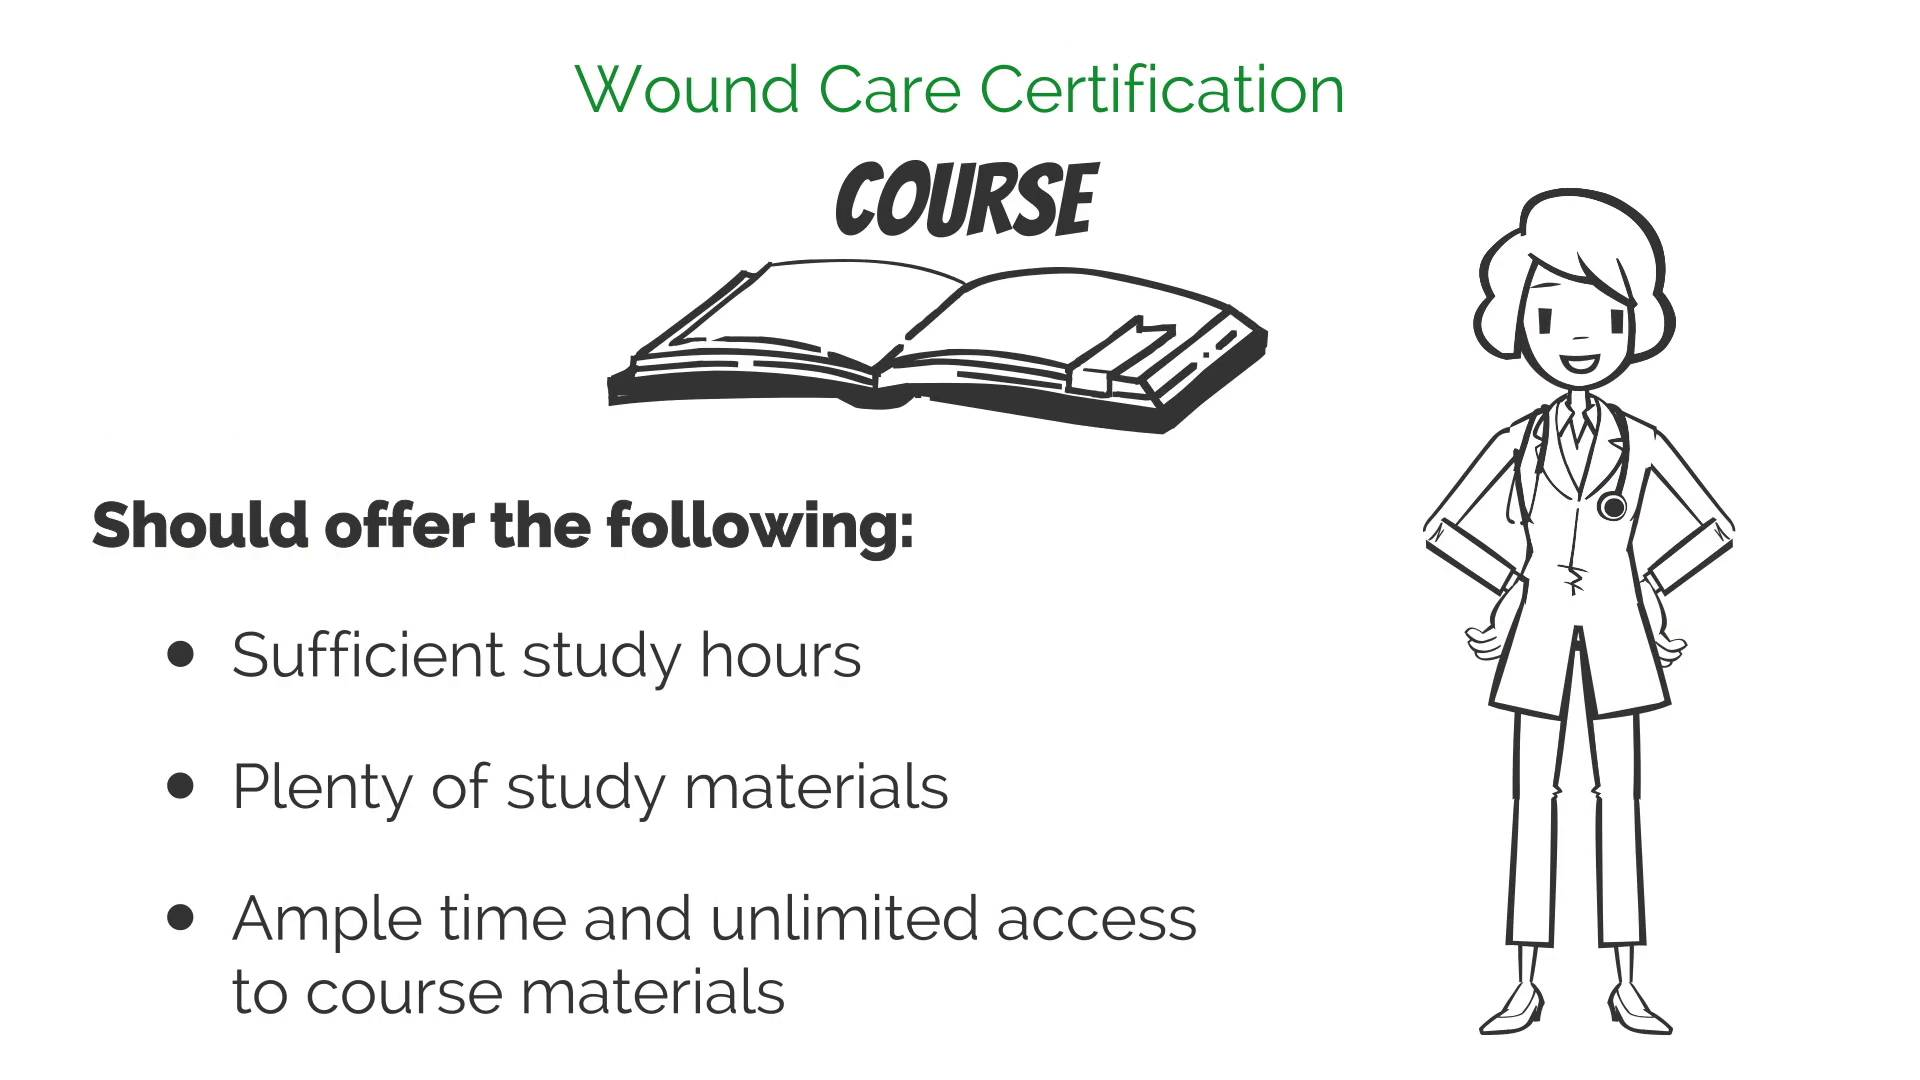 Cna ma wound certification course certified for nursing wound care fandeluxe Images